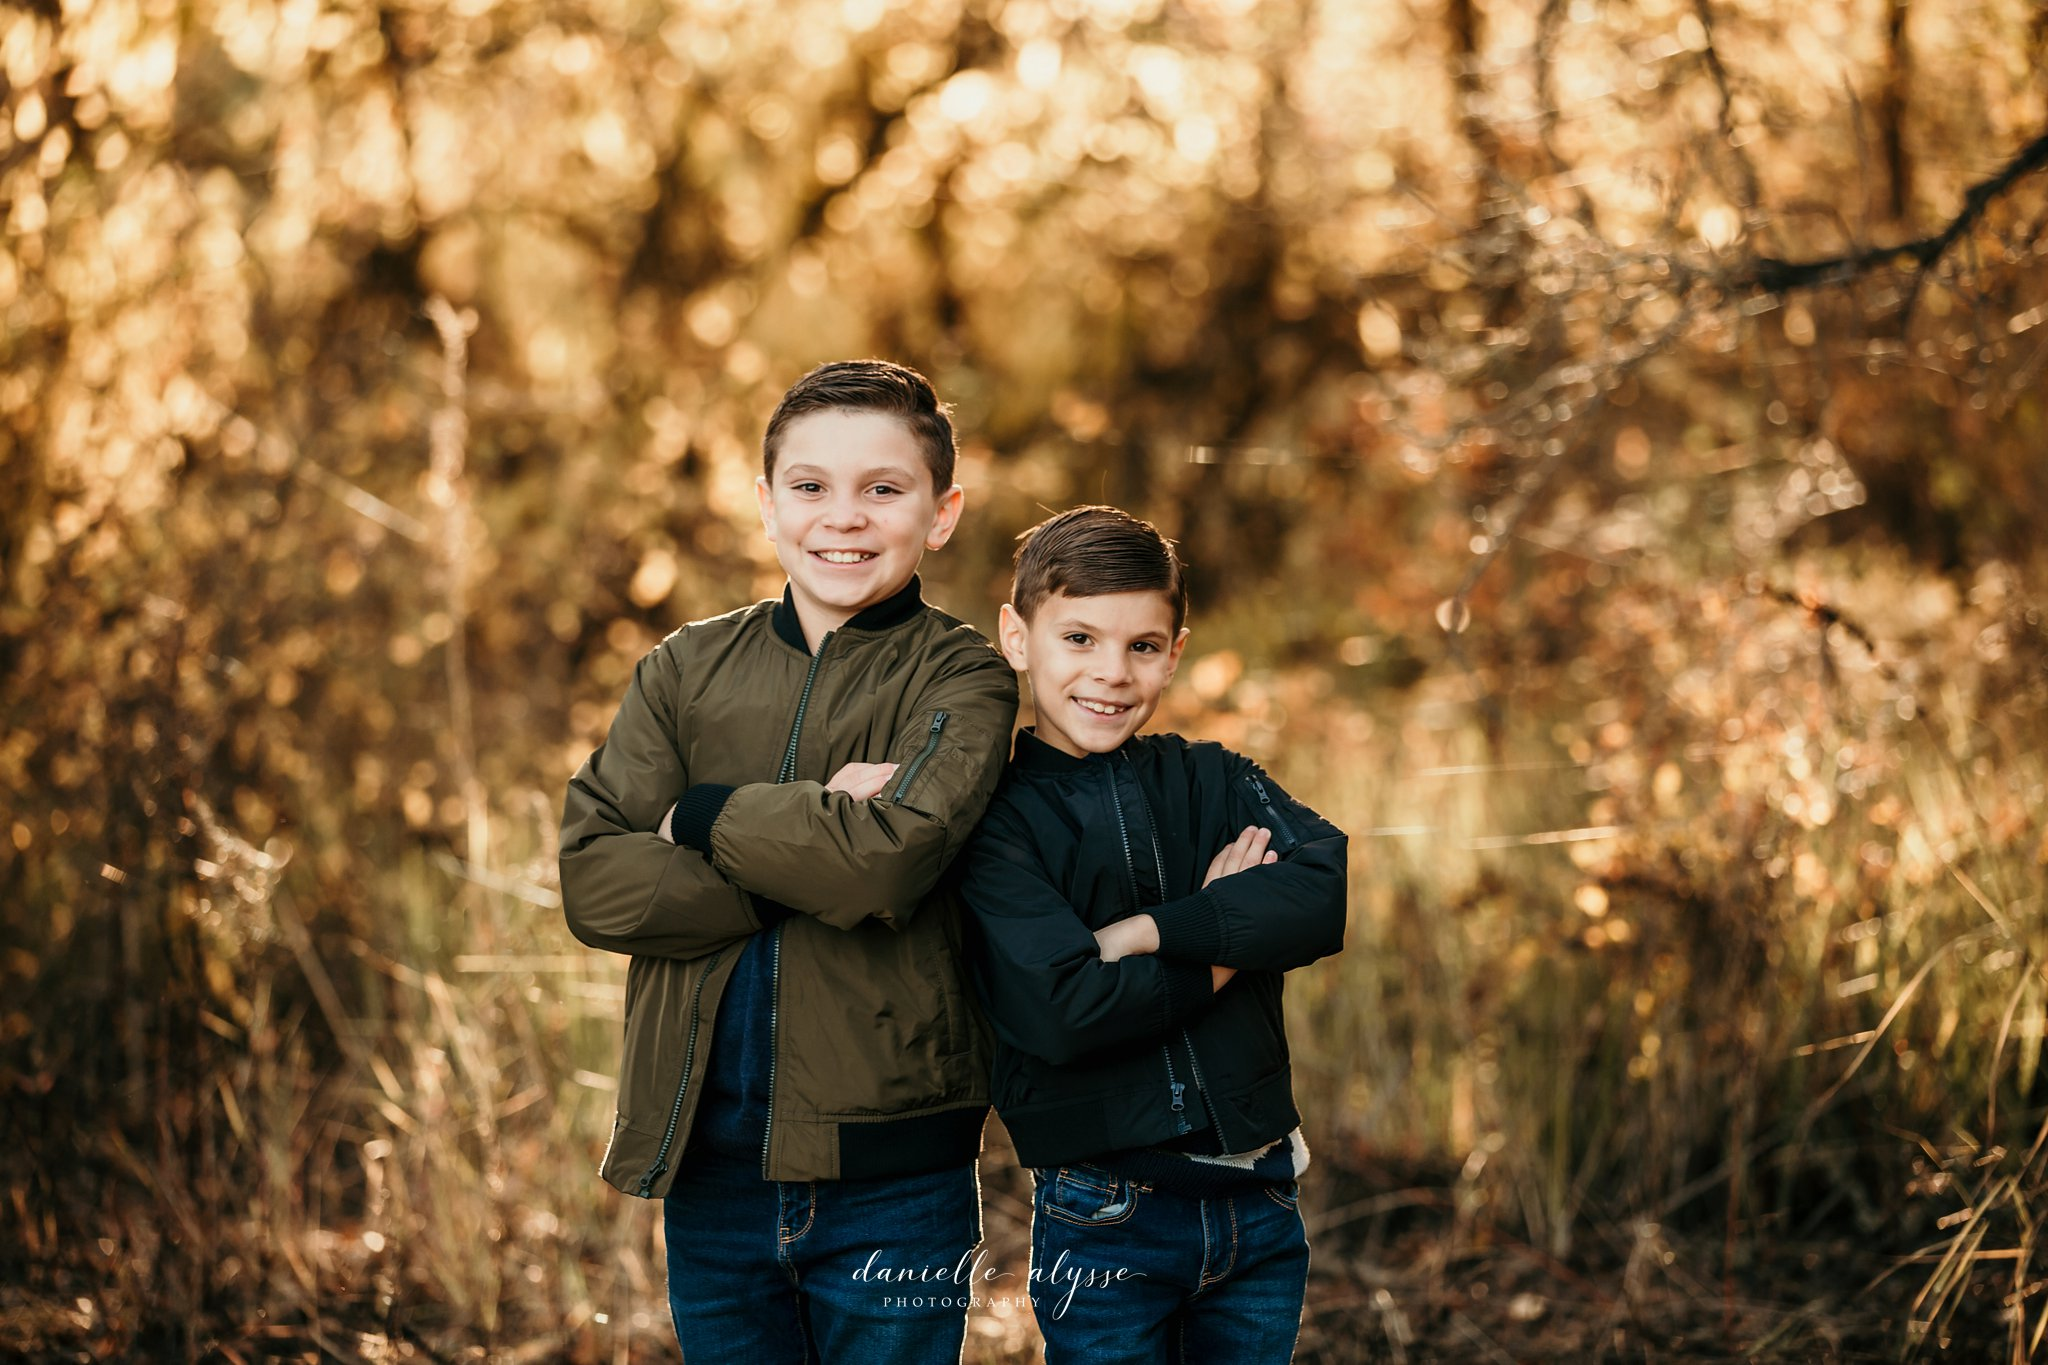 181125_fall_family_portrait_cosumnes_river_preserve_brittney_danielle_alysse_photography_6_WEB.jpg